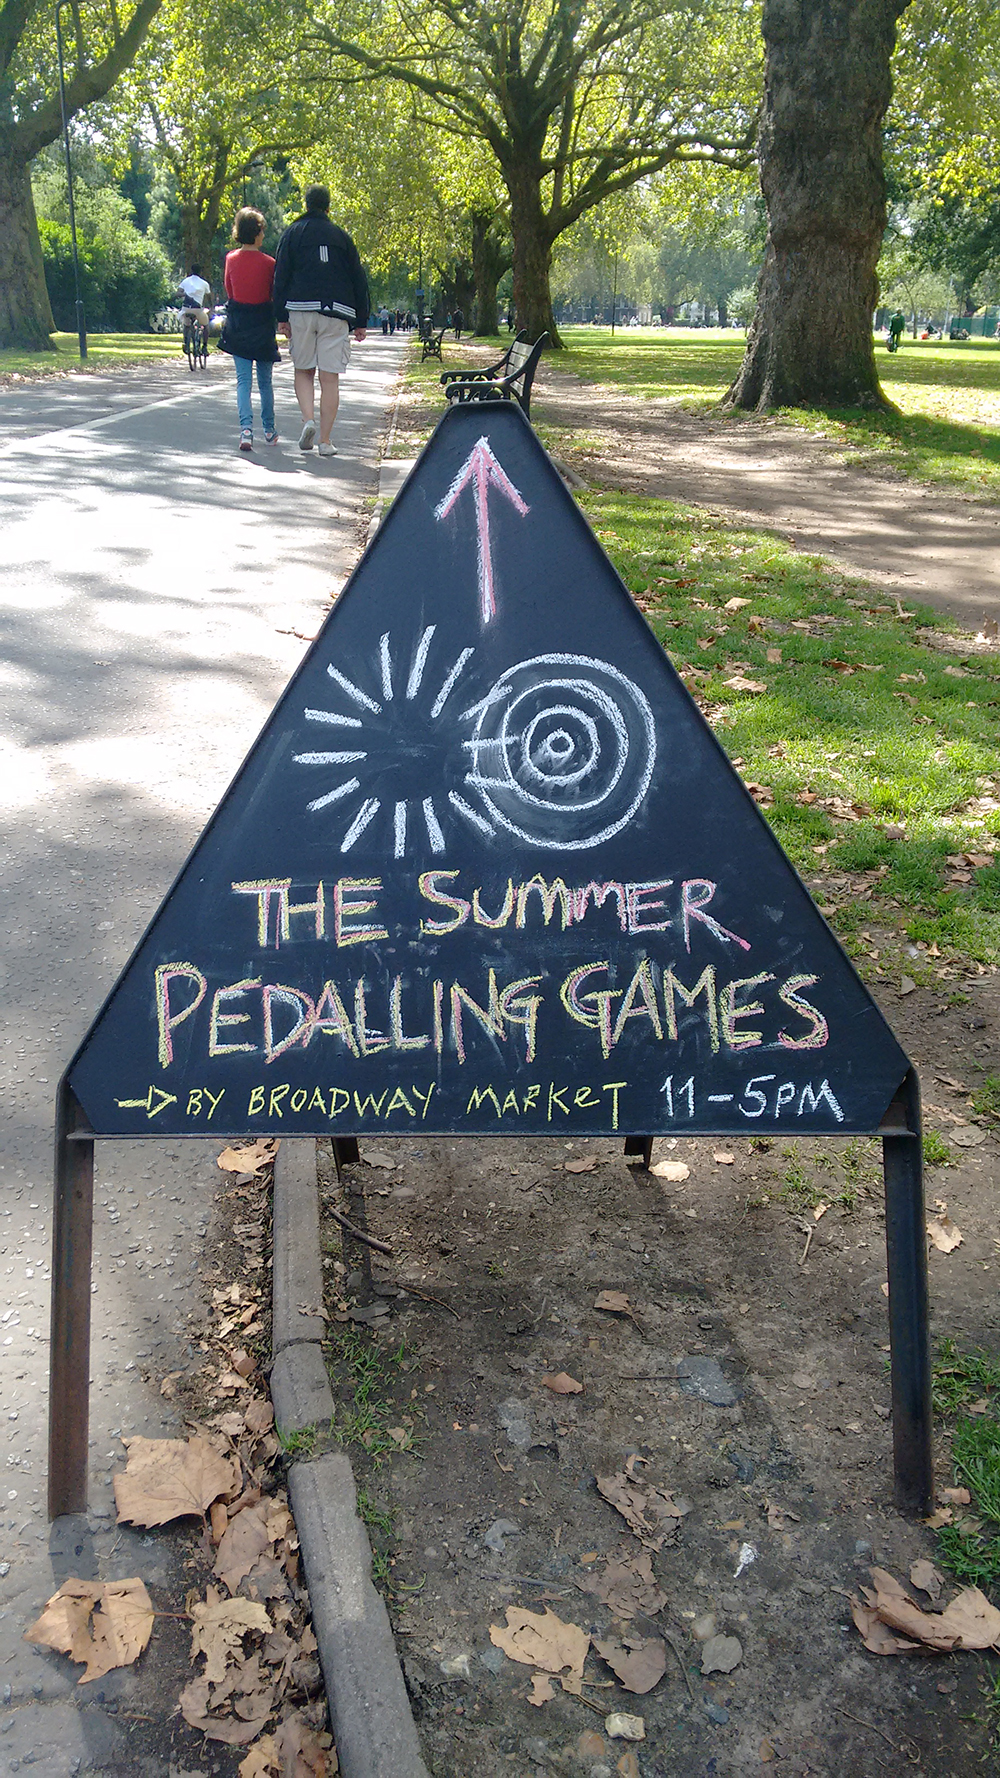 The Summer Pedalling Games